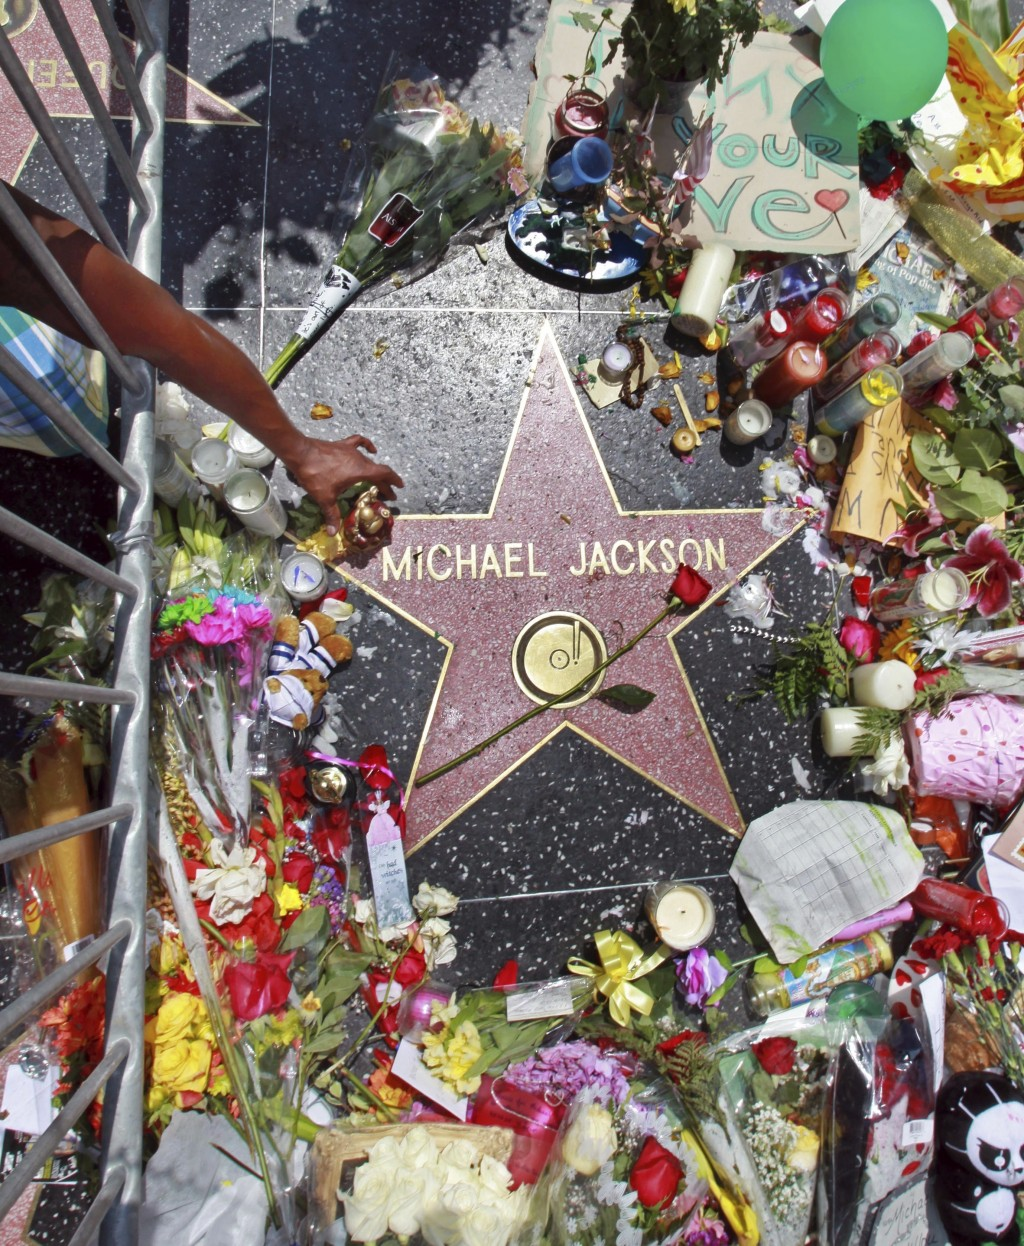 FILE - This June 26, 2009 file photo shows a sidewalk shrine of mementos, flowers and candles adorning the star of Michael Jackson on the Hollywood Wa...